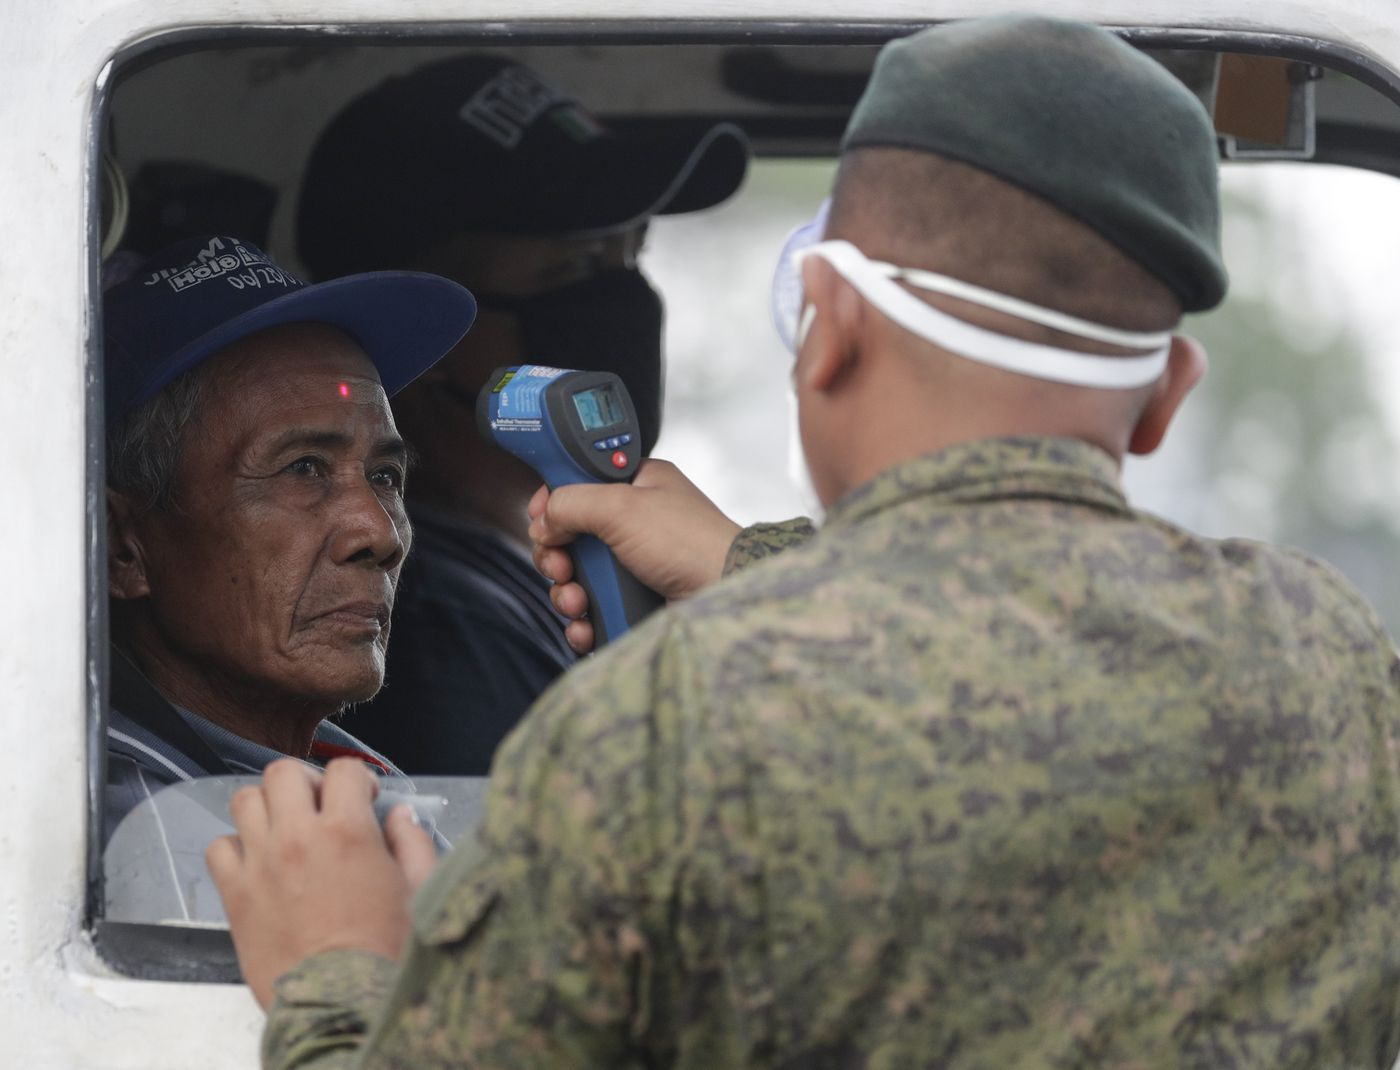 A man's temperature is checked by an army trooper before entering the metropolis at a checkpoint on the outskirts of Quezon city, Philippines Sunday, March 15, 2020. Thousands of Philippine police, backed by the army and coast guard, have started sealing the densely populated capital from most domestic travelers in one of Southeast Asia's most drastic containment moves against the coronavirus. (AP Photo/Aaron Favila)